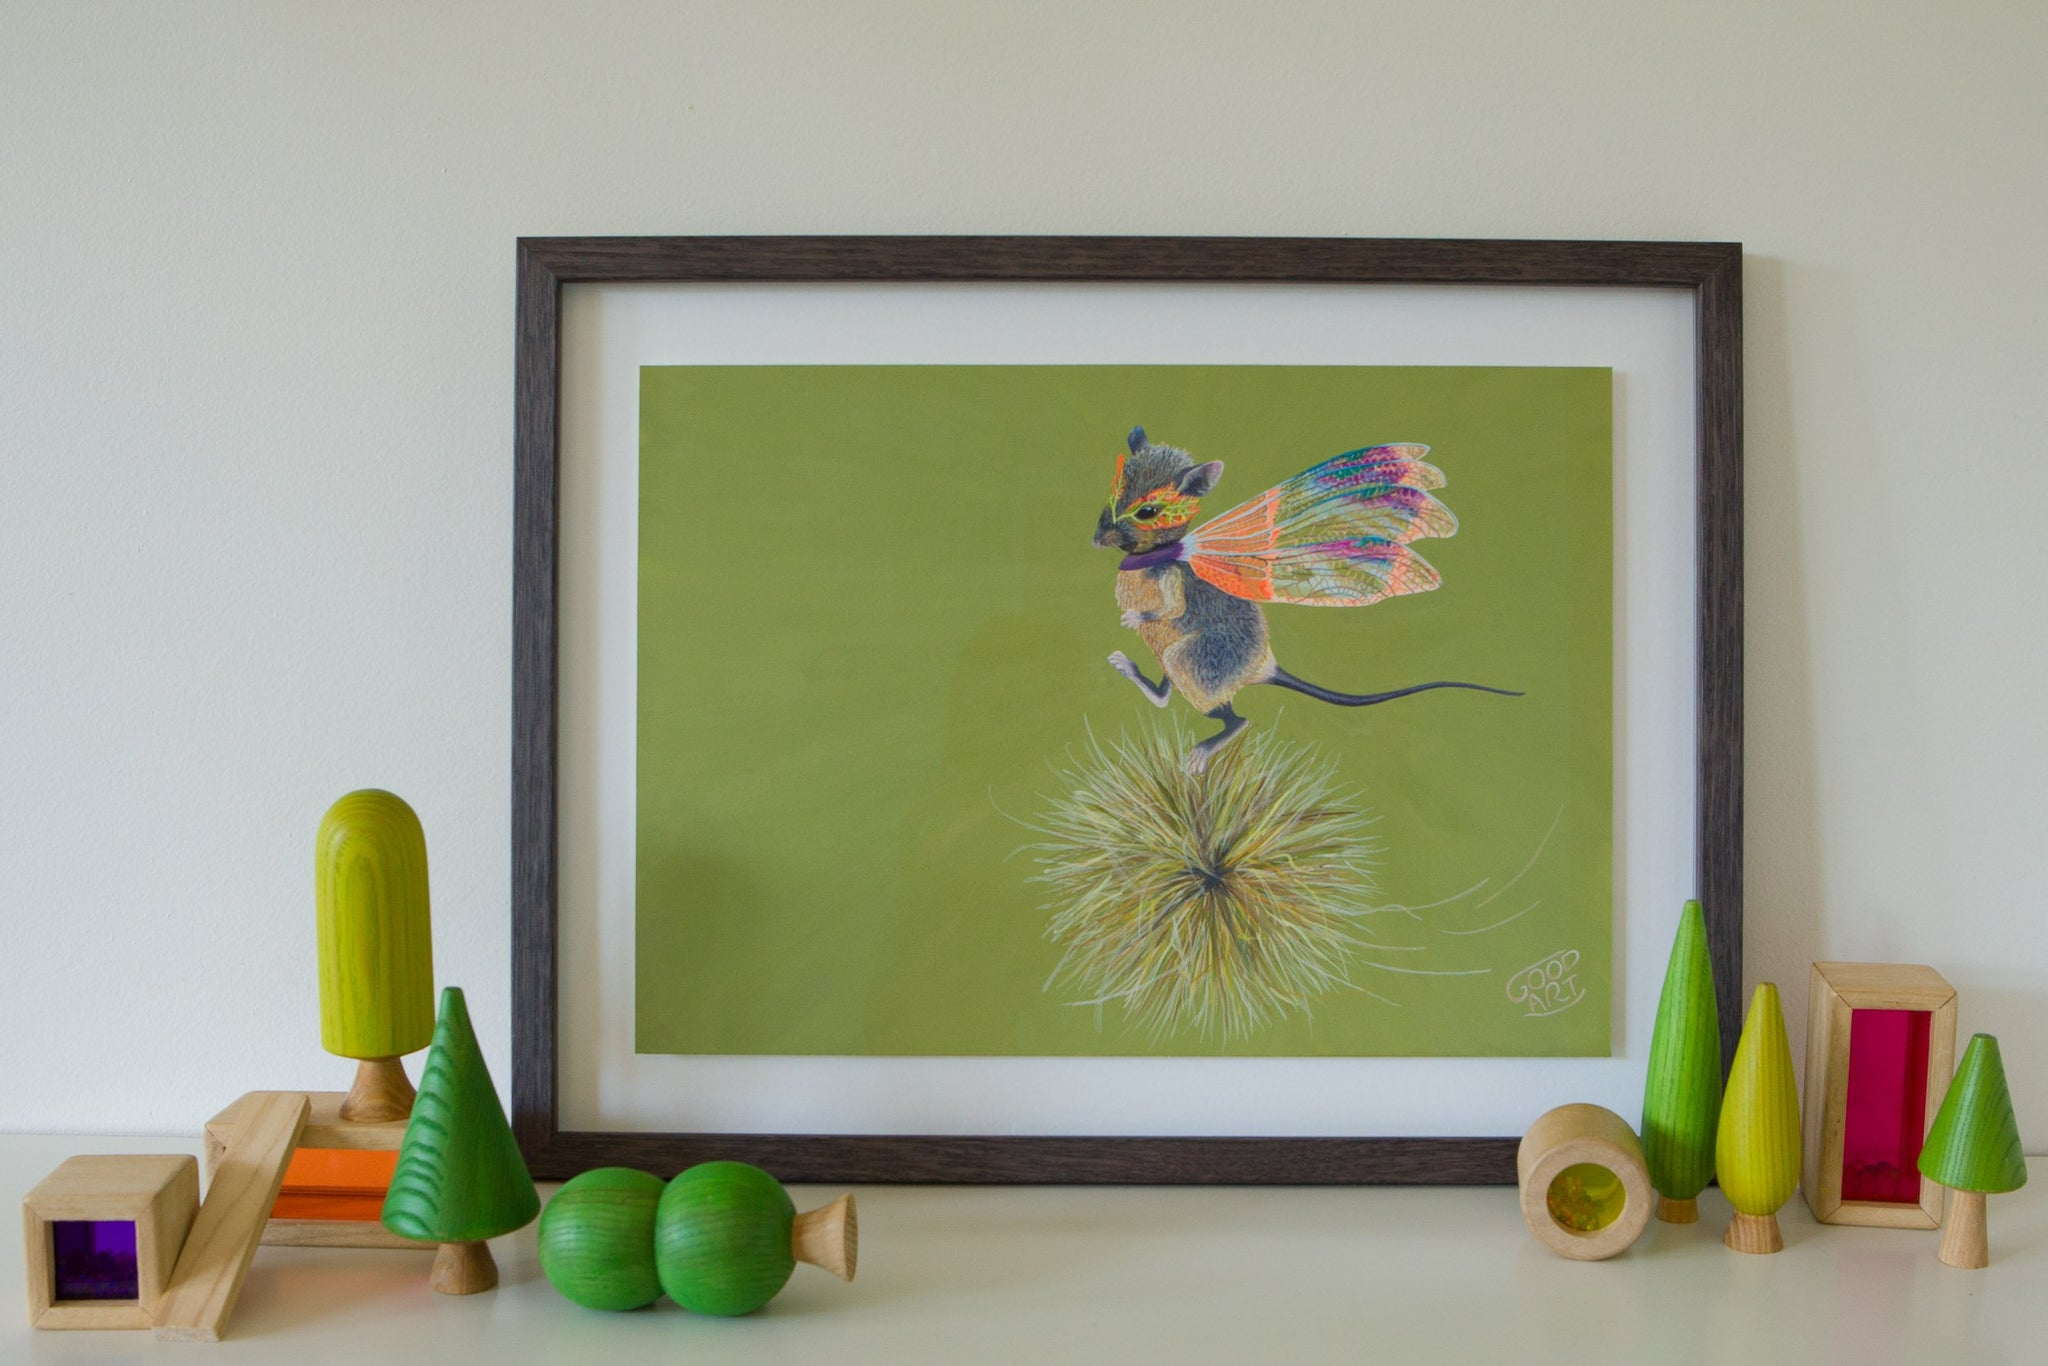 Western Australian marsupial, the Dunnart. Mouse-like in appearance. In this artwork the Dunnart wearing a set of dragonfly wings runs along on top of a spinning spinifix. A predominately olive coloured background. Artwork sits on shelf amongst wooden kids toys. Kids prints painted by artist Jaelle Pedroli.